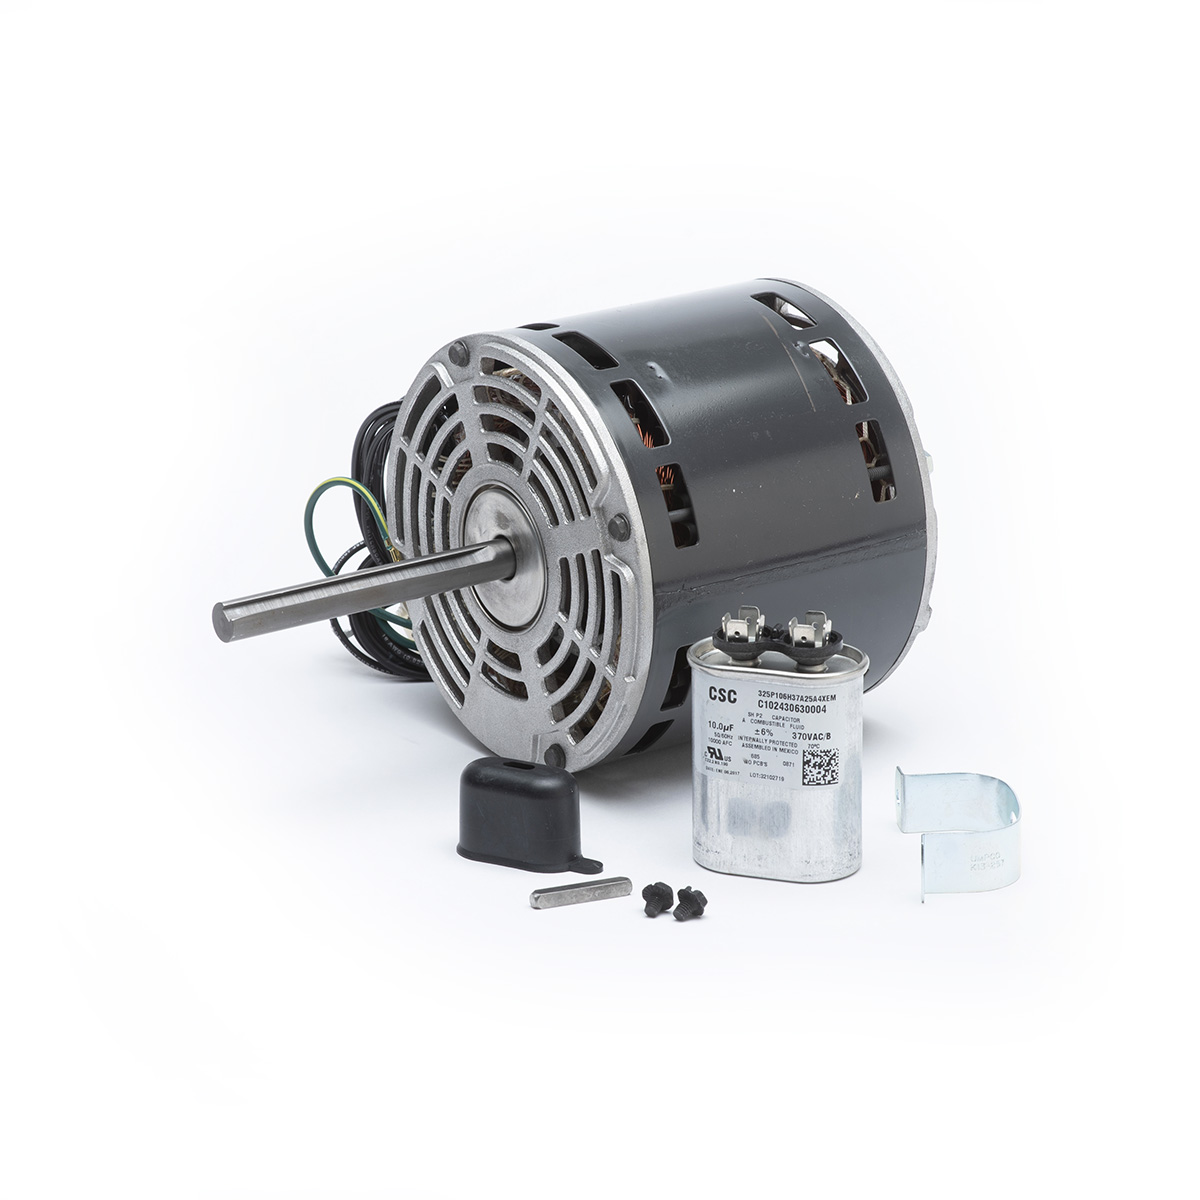 Motor Kit, 1/3HP, ACB, 1218